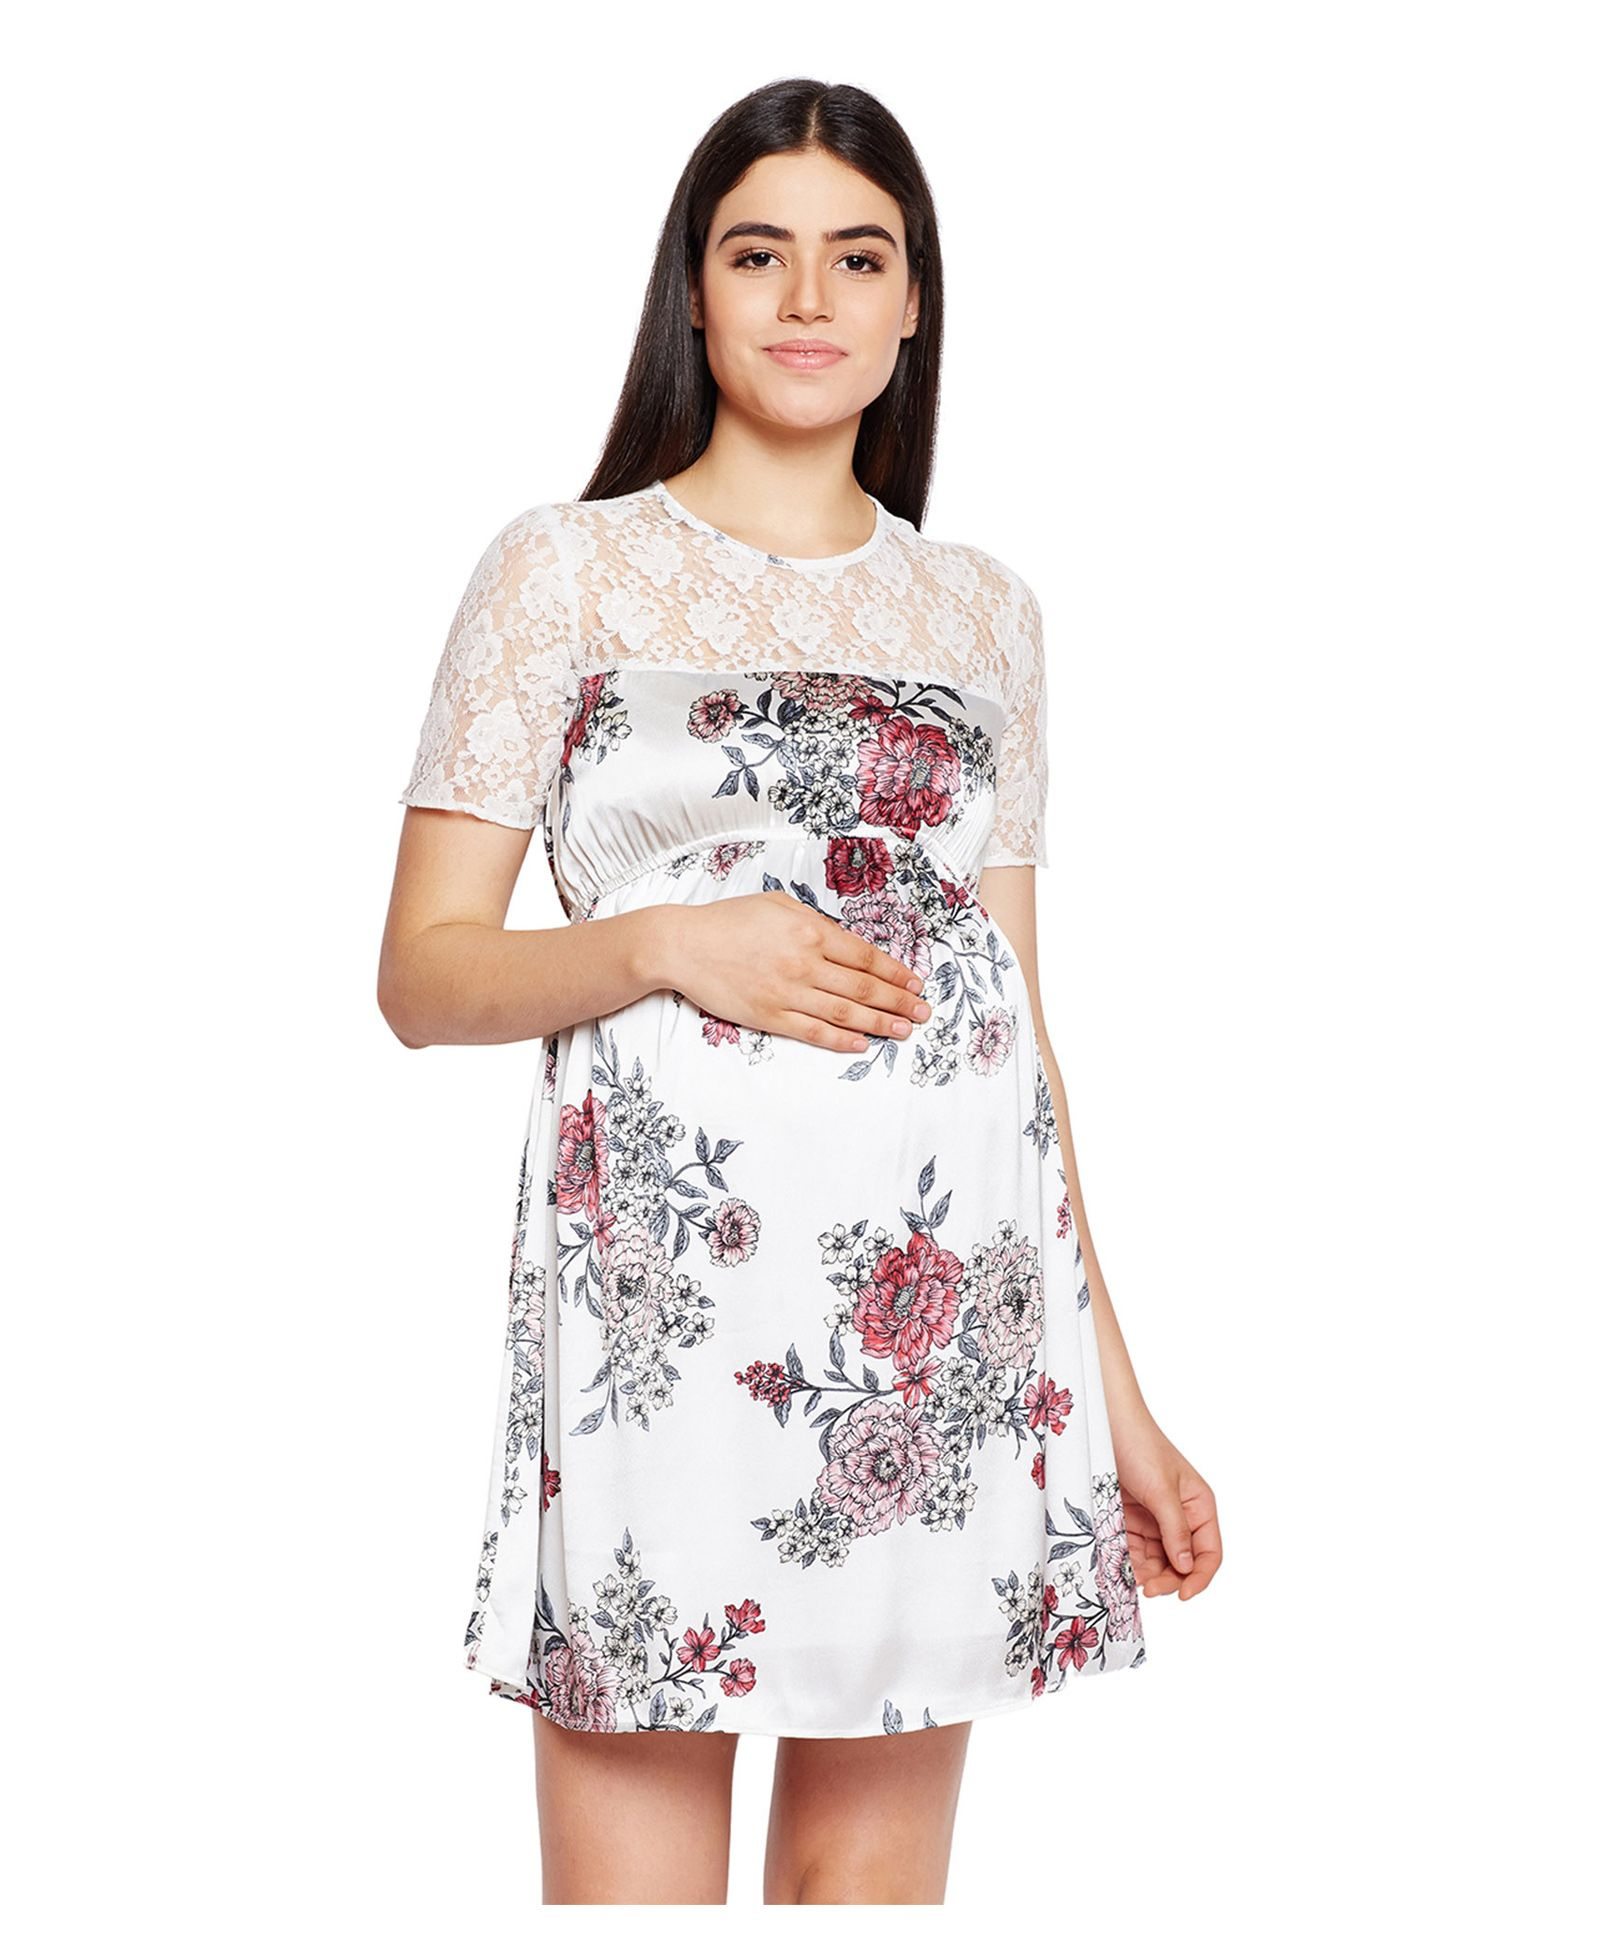 cf870824f727 White Floral Dress Online India